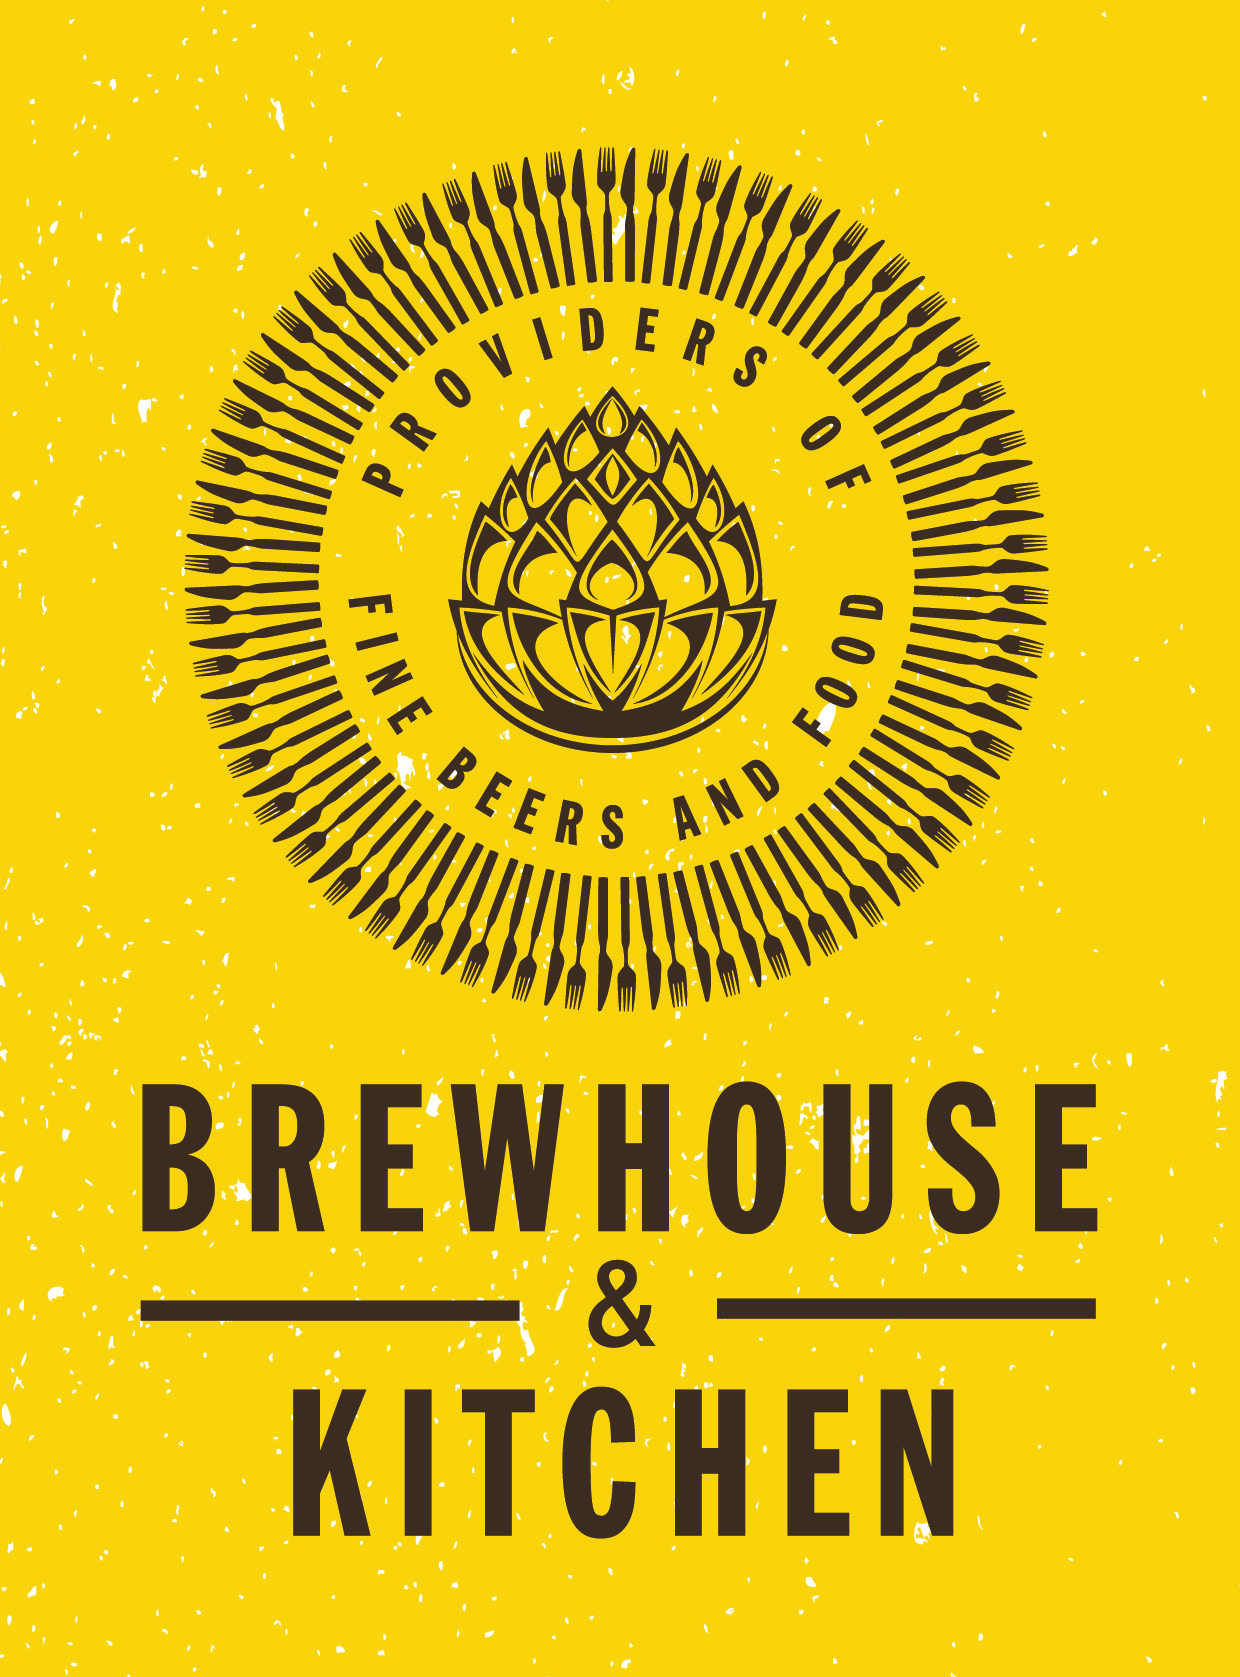 Brewhouse & Kitchen Bristol